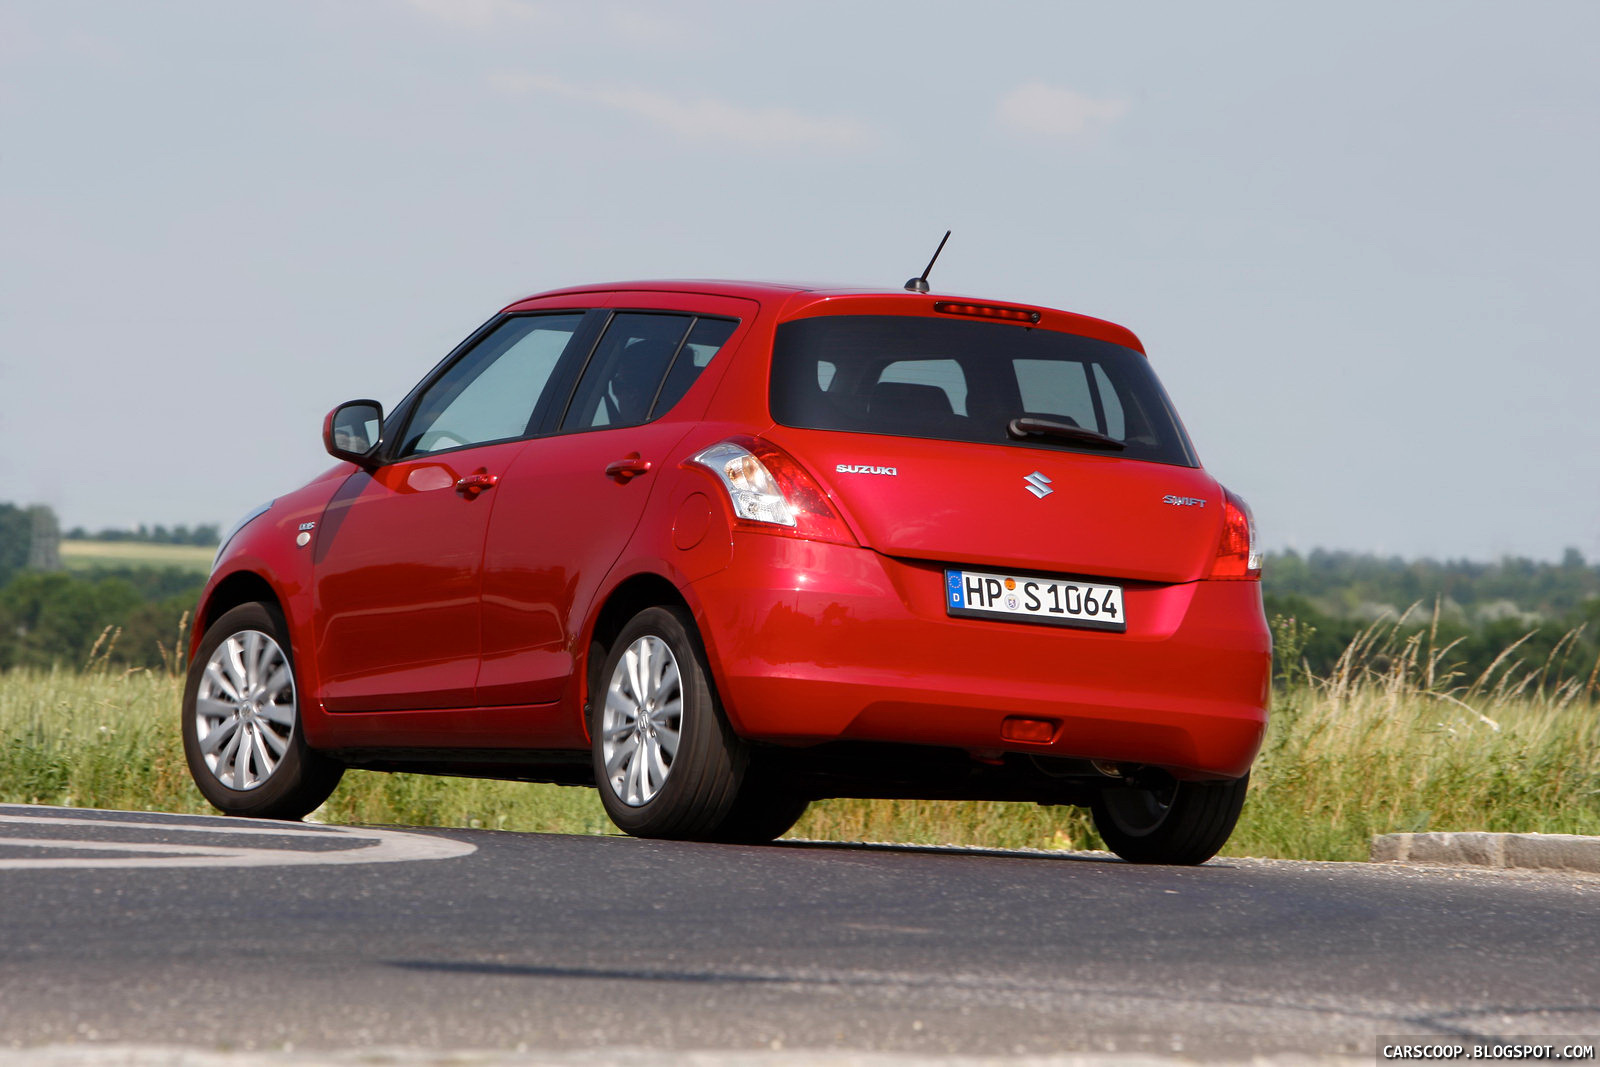 2011 suzuki swift new photo gallery and complete specs carscoops. Black Bedroom Furniture Sets. Home Design Ideas